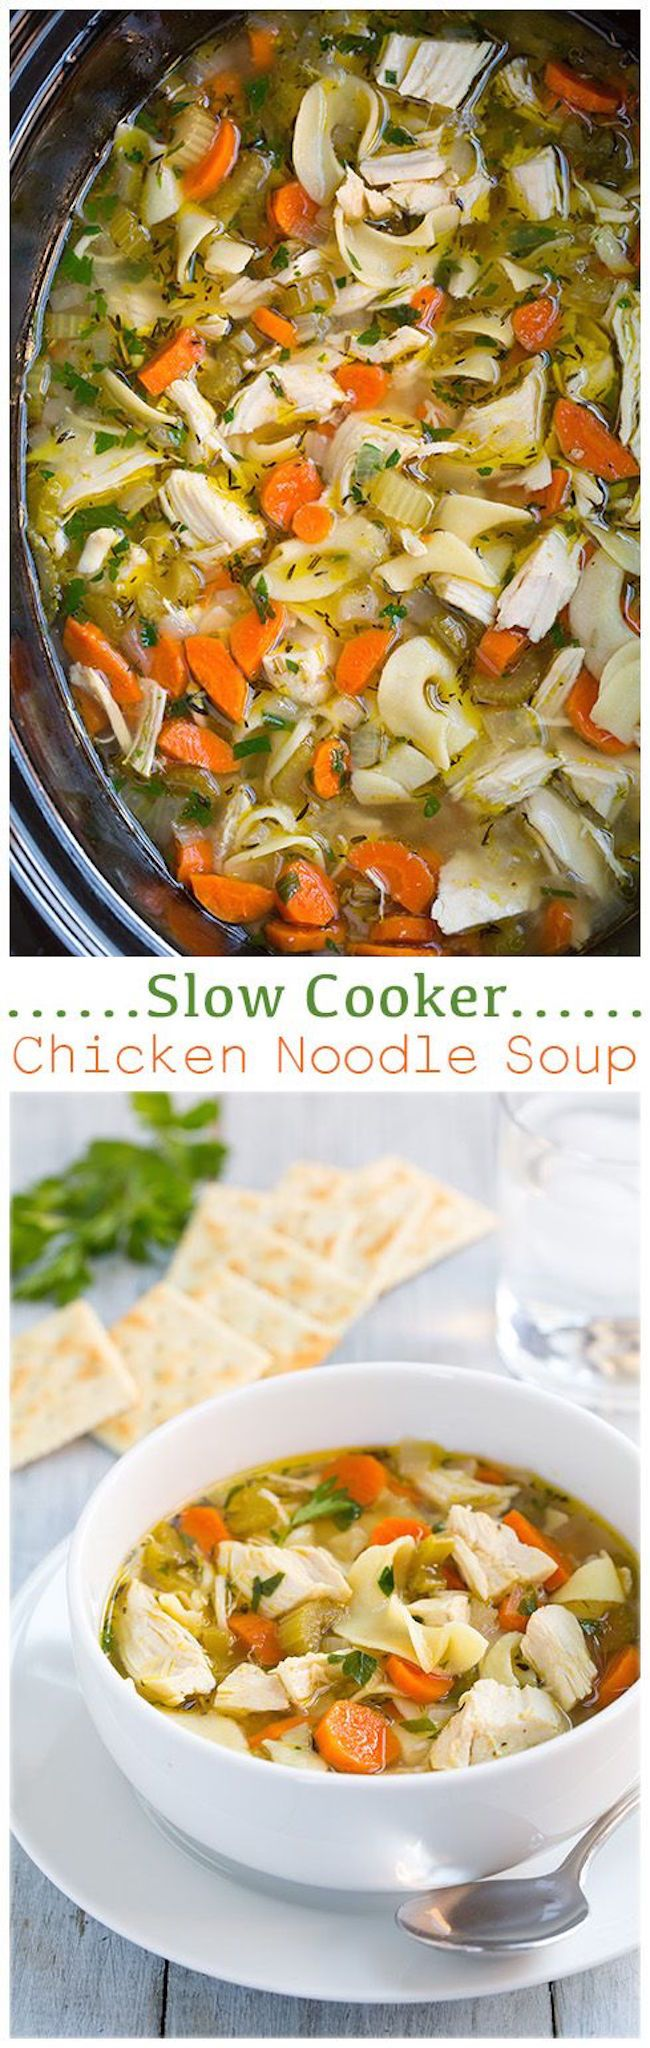 The 11 Best Crockpot Soup Recipes | The Eleven Best